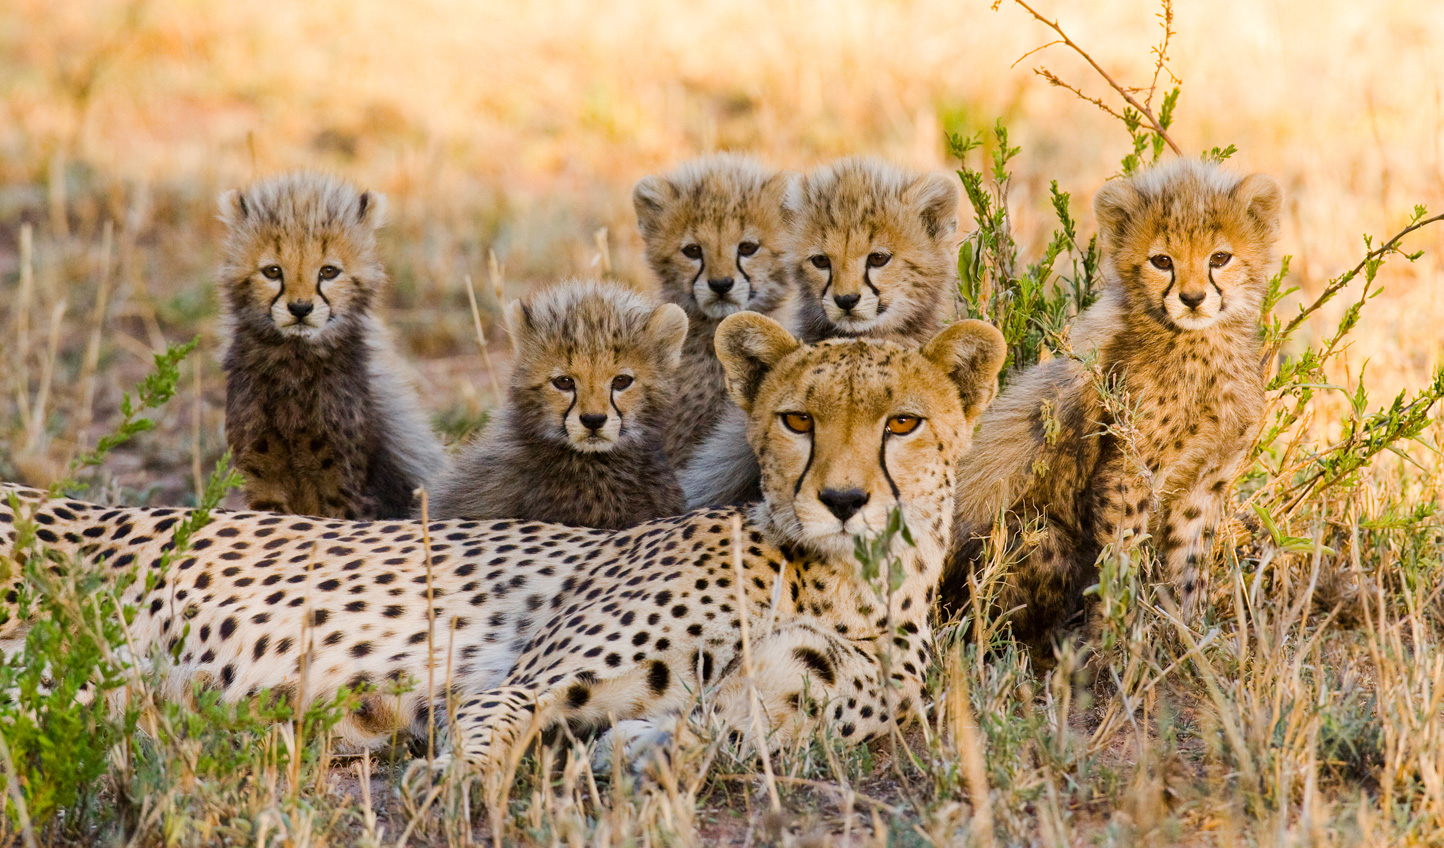 Spot cheetahs on a game drive